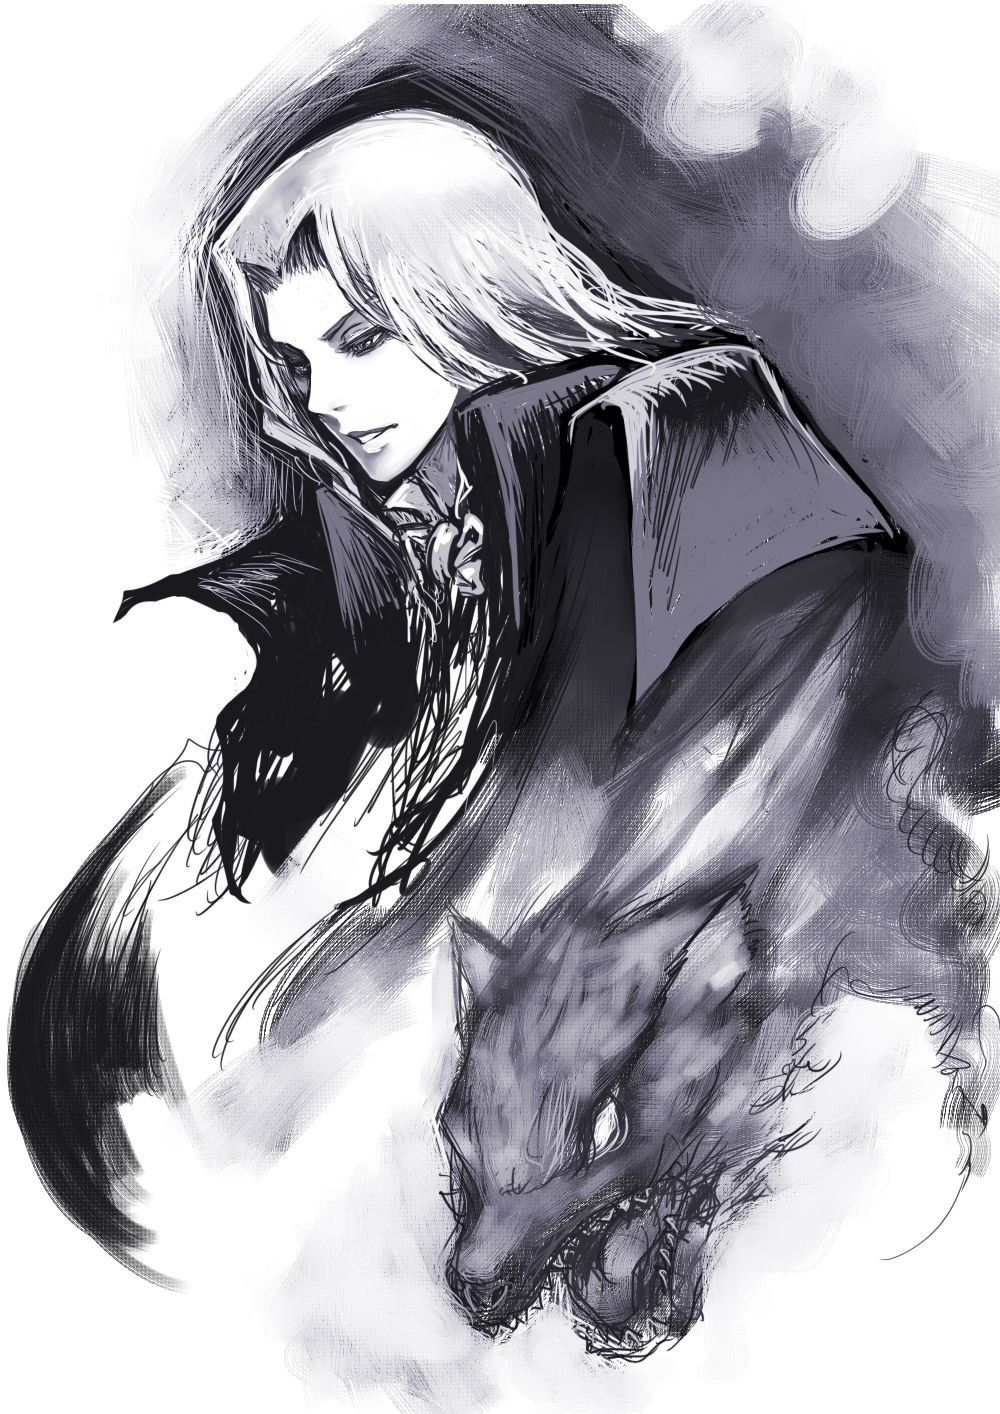 Pin by Dr4g0nM0th3r on castlevania baies in 2020 Alucard